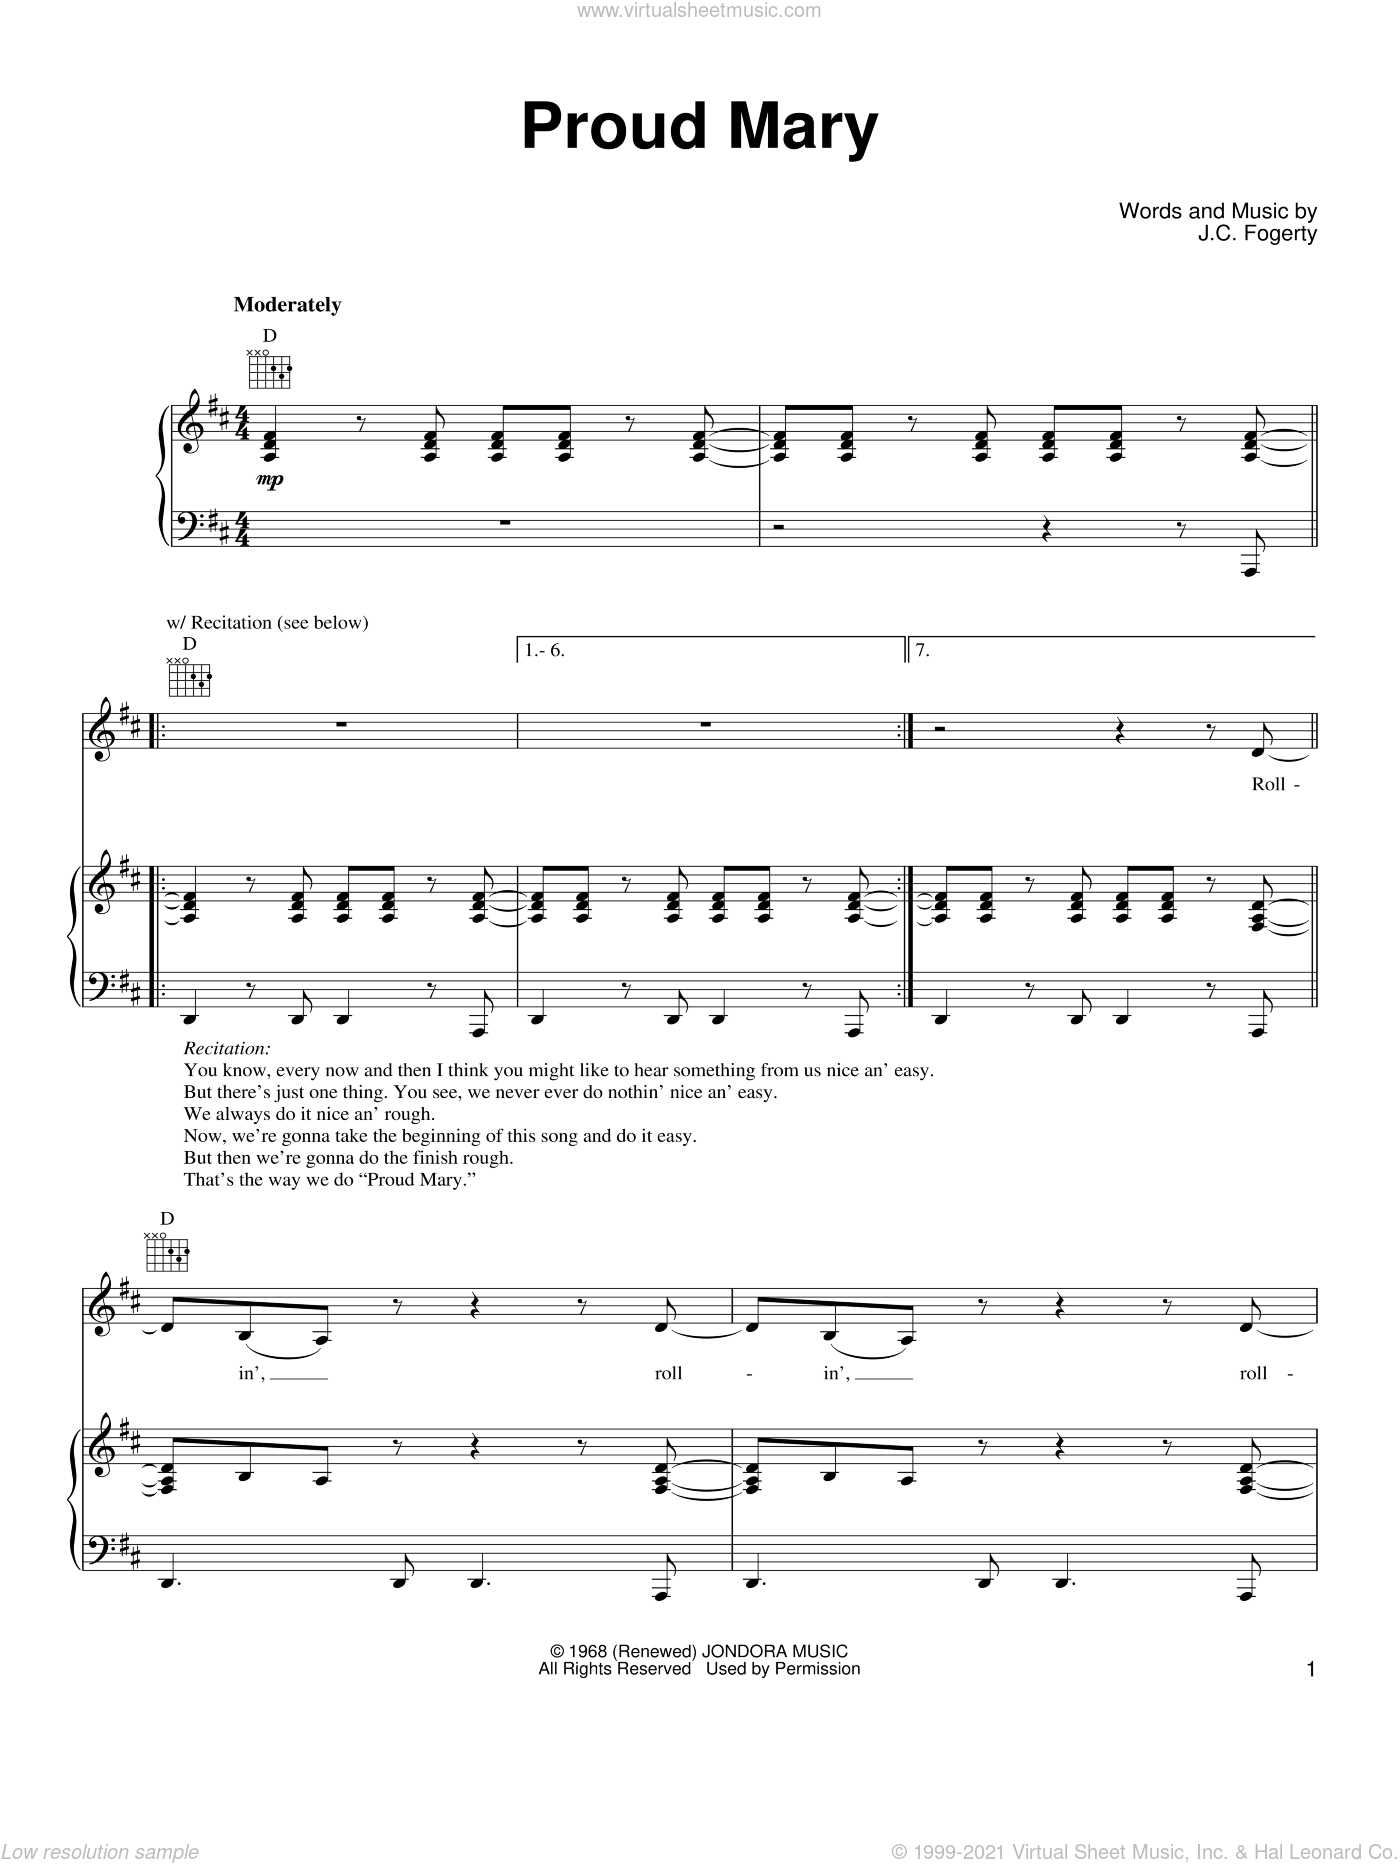 Proud Mary sheet music for voice, piano or guitar by Ike & Tina Turner, Creedence Clearwater Revival and John Fogerty, intermediate skill level